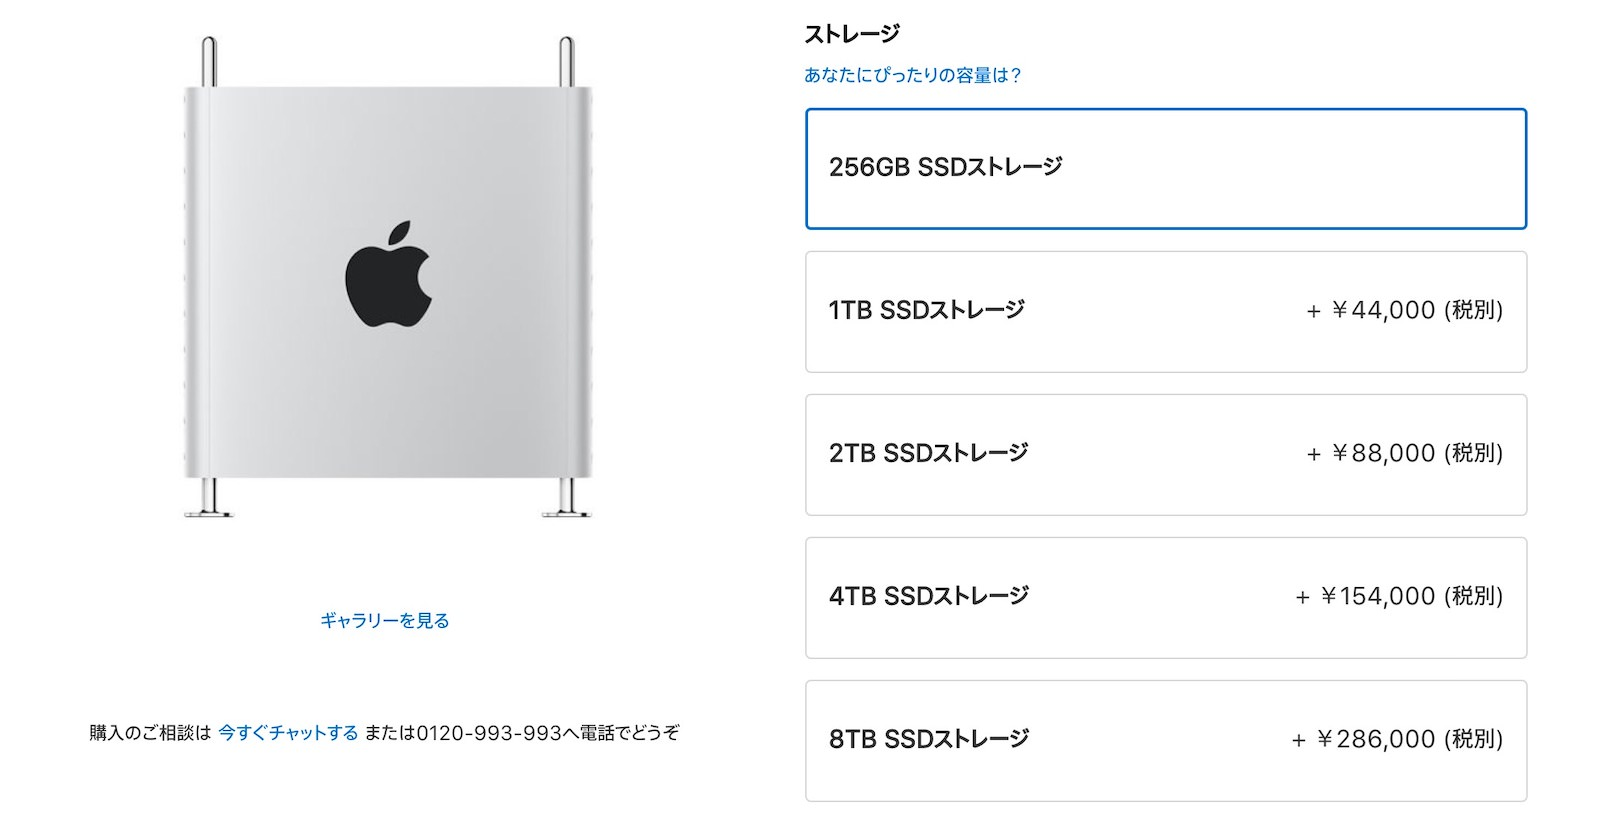 8TB SSD now available for macpro